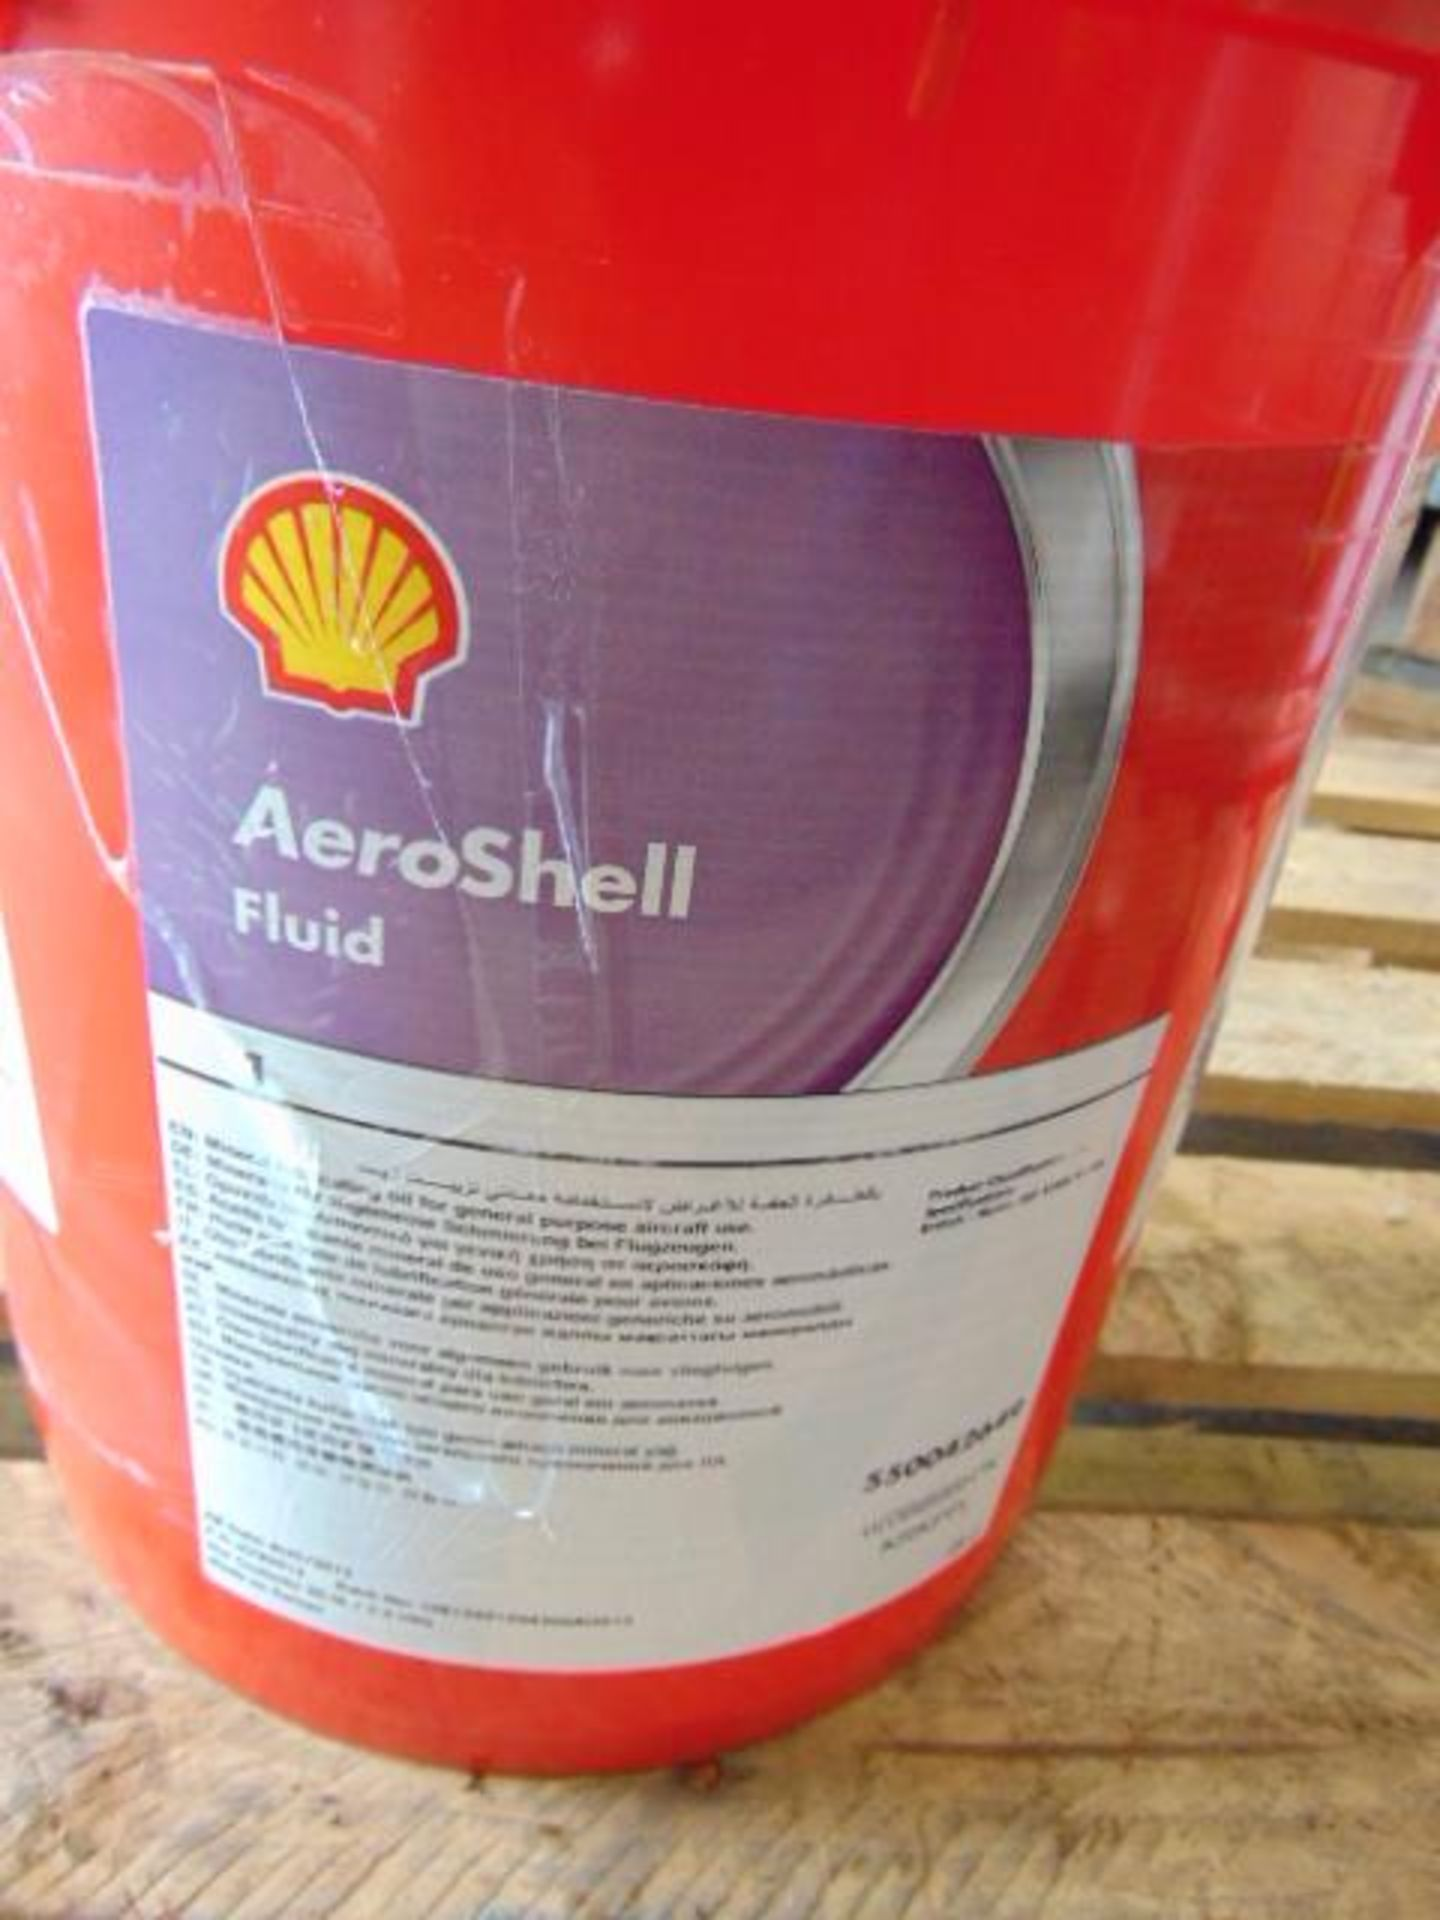 Lot 112 - Qty 1 x 20 Ltr Shell Aeroshell Fluid Direct from Reserve Stores